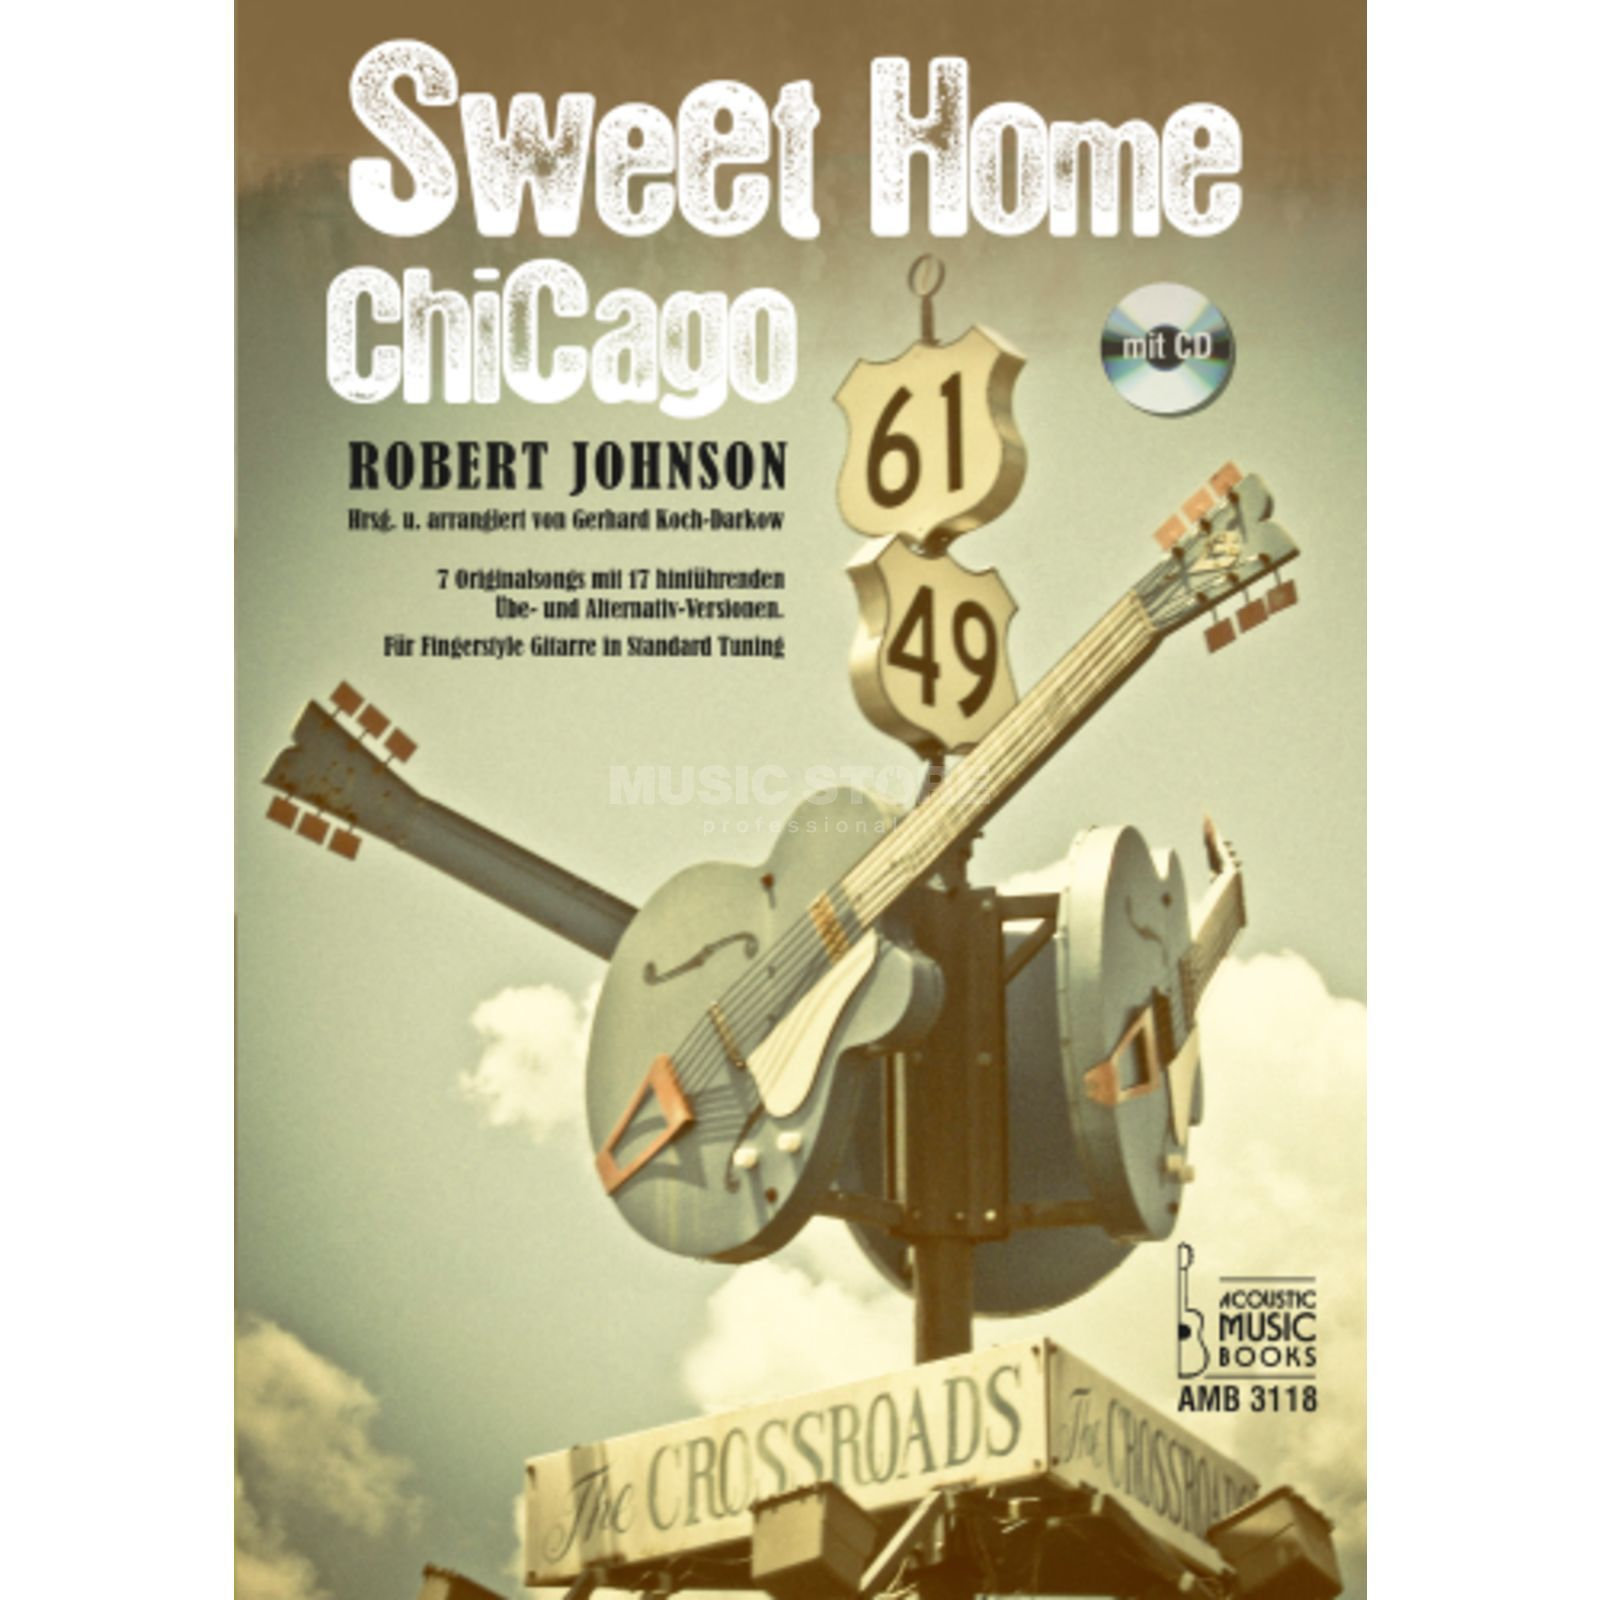 Acoustic Music Books Sweet Home Chicago Robert Johnson,Gitarre, mit CD Produktbild